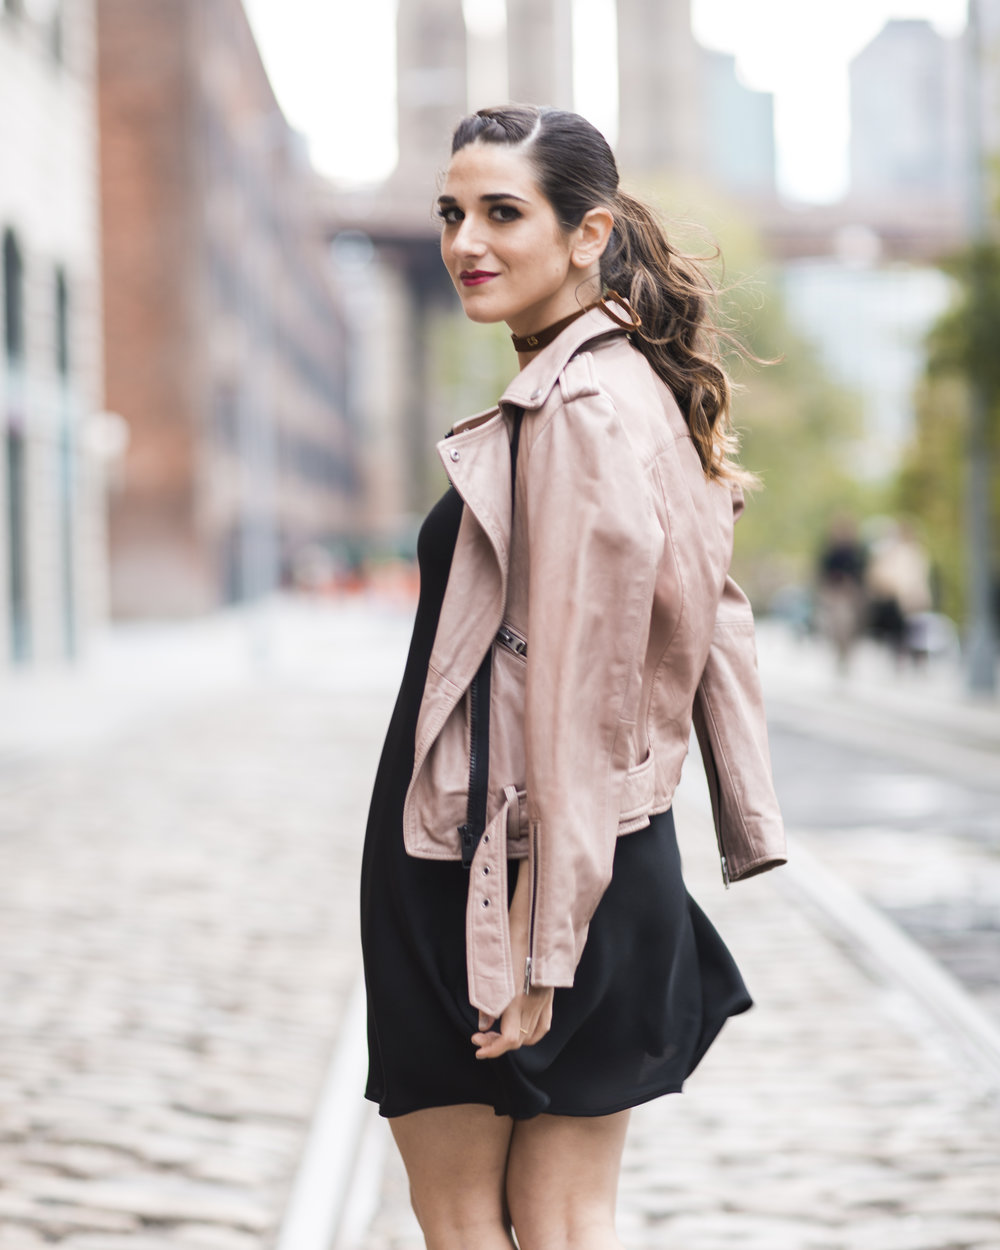 Pink Leather Jacket Erin Dana Choker Louboutins & Love Fashion Blog Esther Santer NYC Street Style Blogger Outfit OOTD Trendy All Saints Hair Inspo Fall Look Via Spiga Black Shoes Bloomingdales Slip Dress Girl Women Model Dumbo Pretty Shop Accessories.jpg